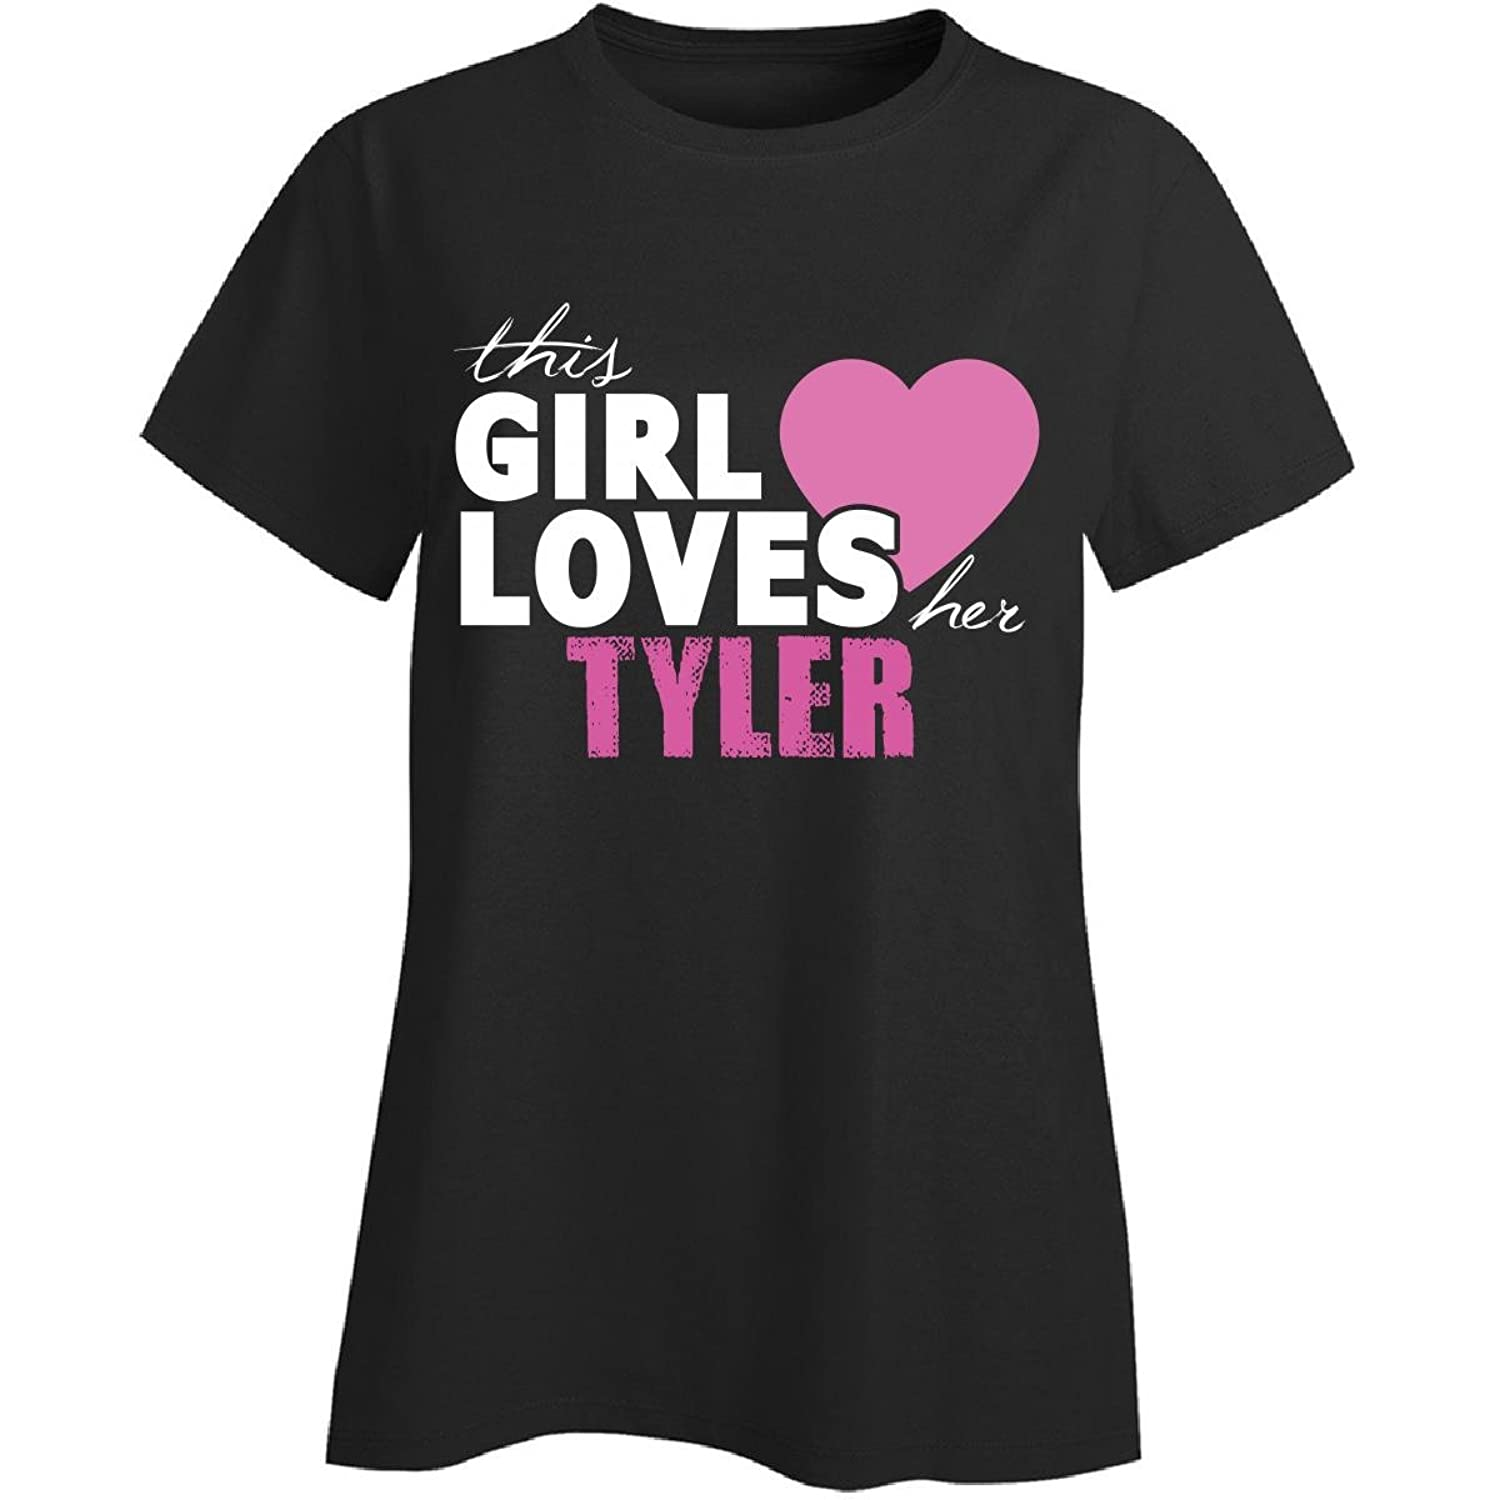 This Girl Loves Her Tyler Personal Valentines Gift - Ladies T-shirt